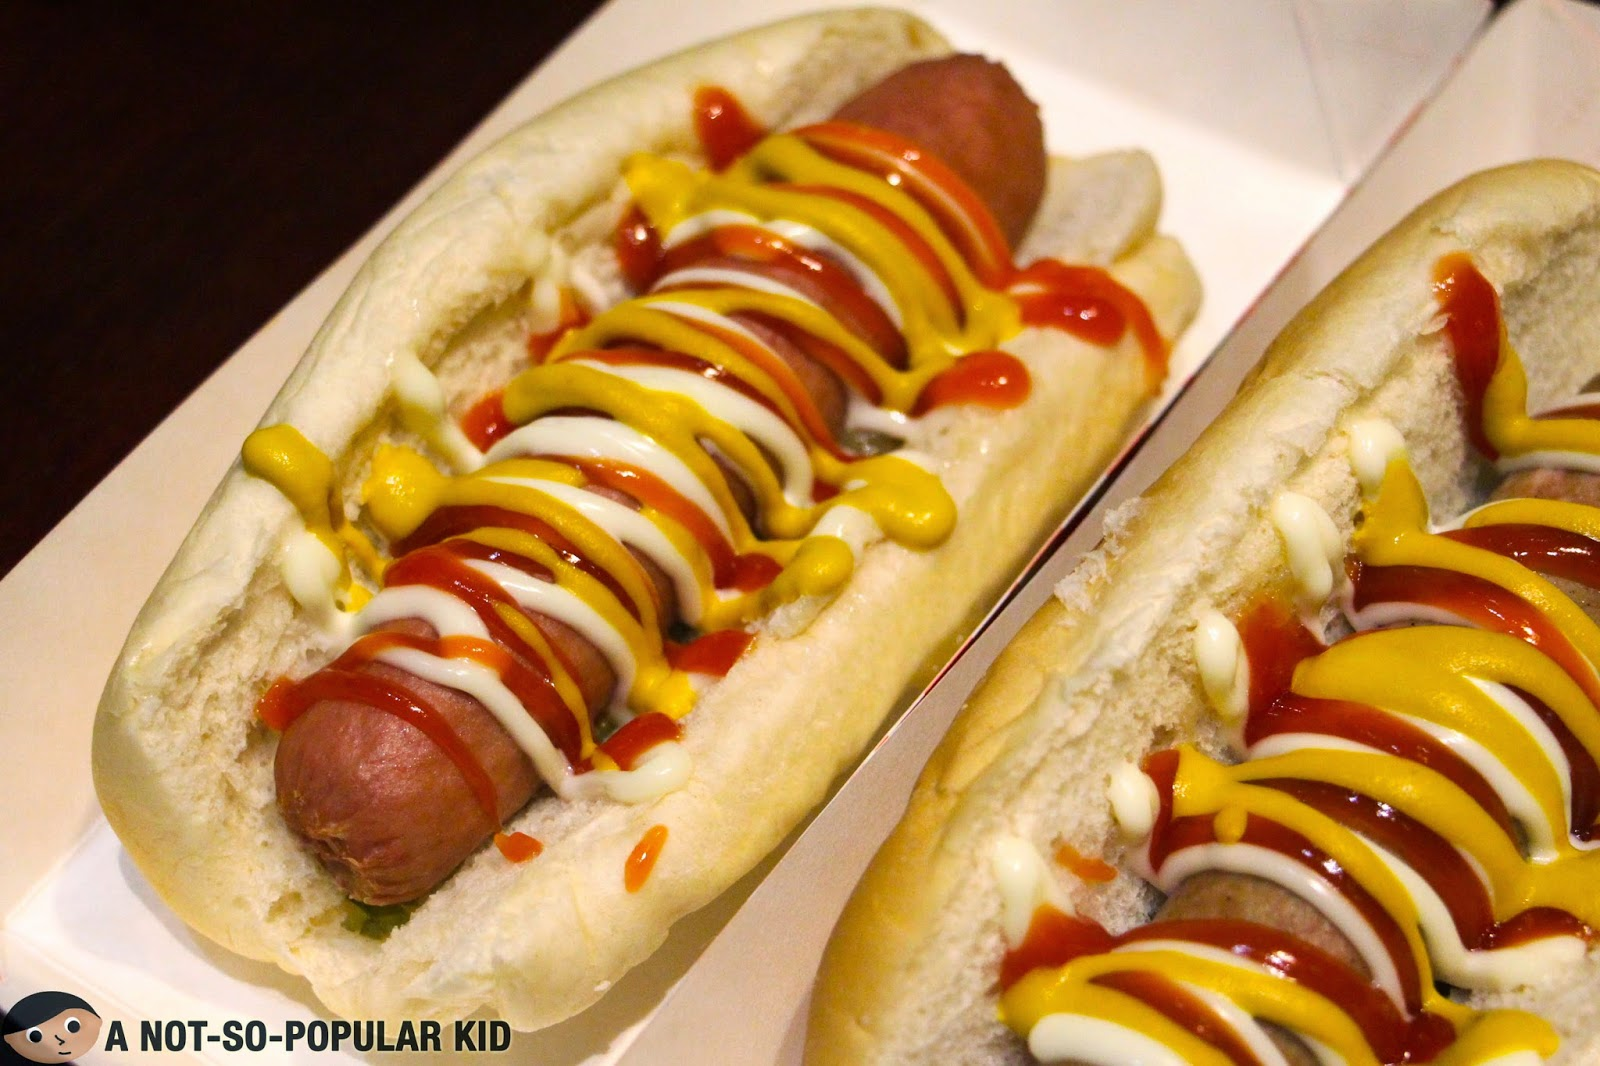 The classic franks that made Franks Craft Beer famous